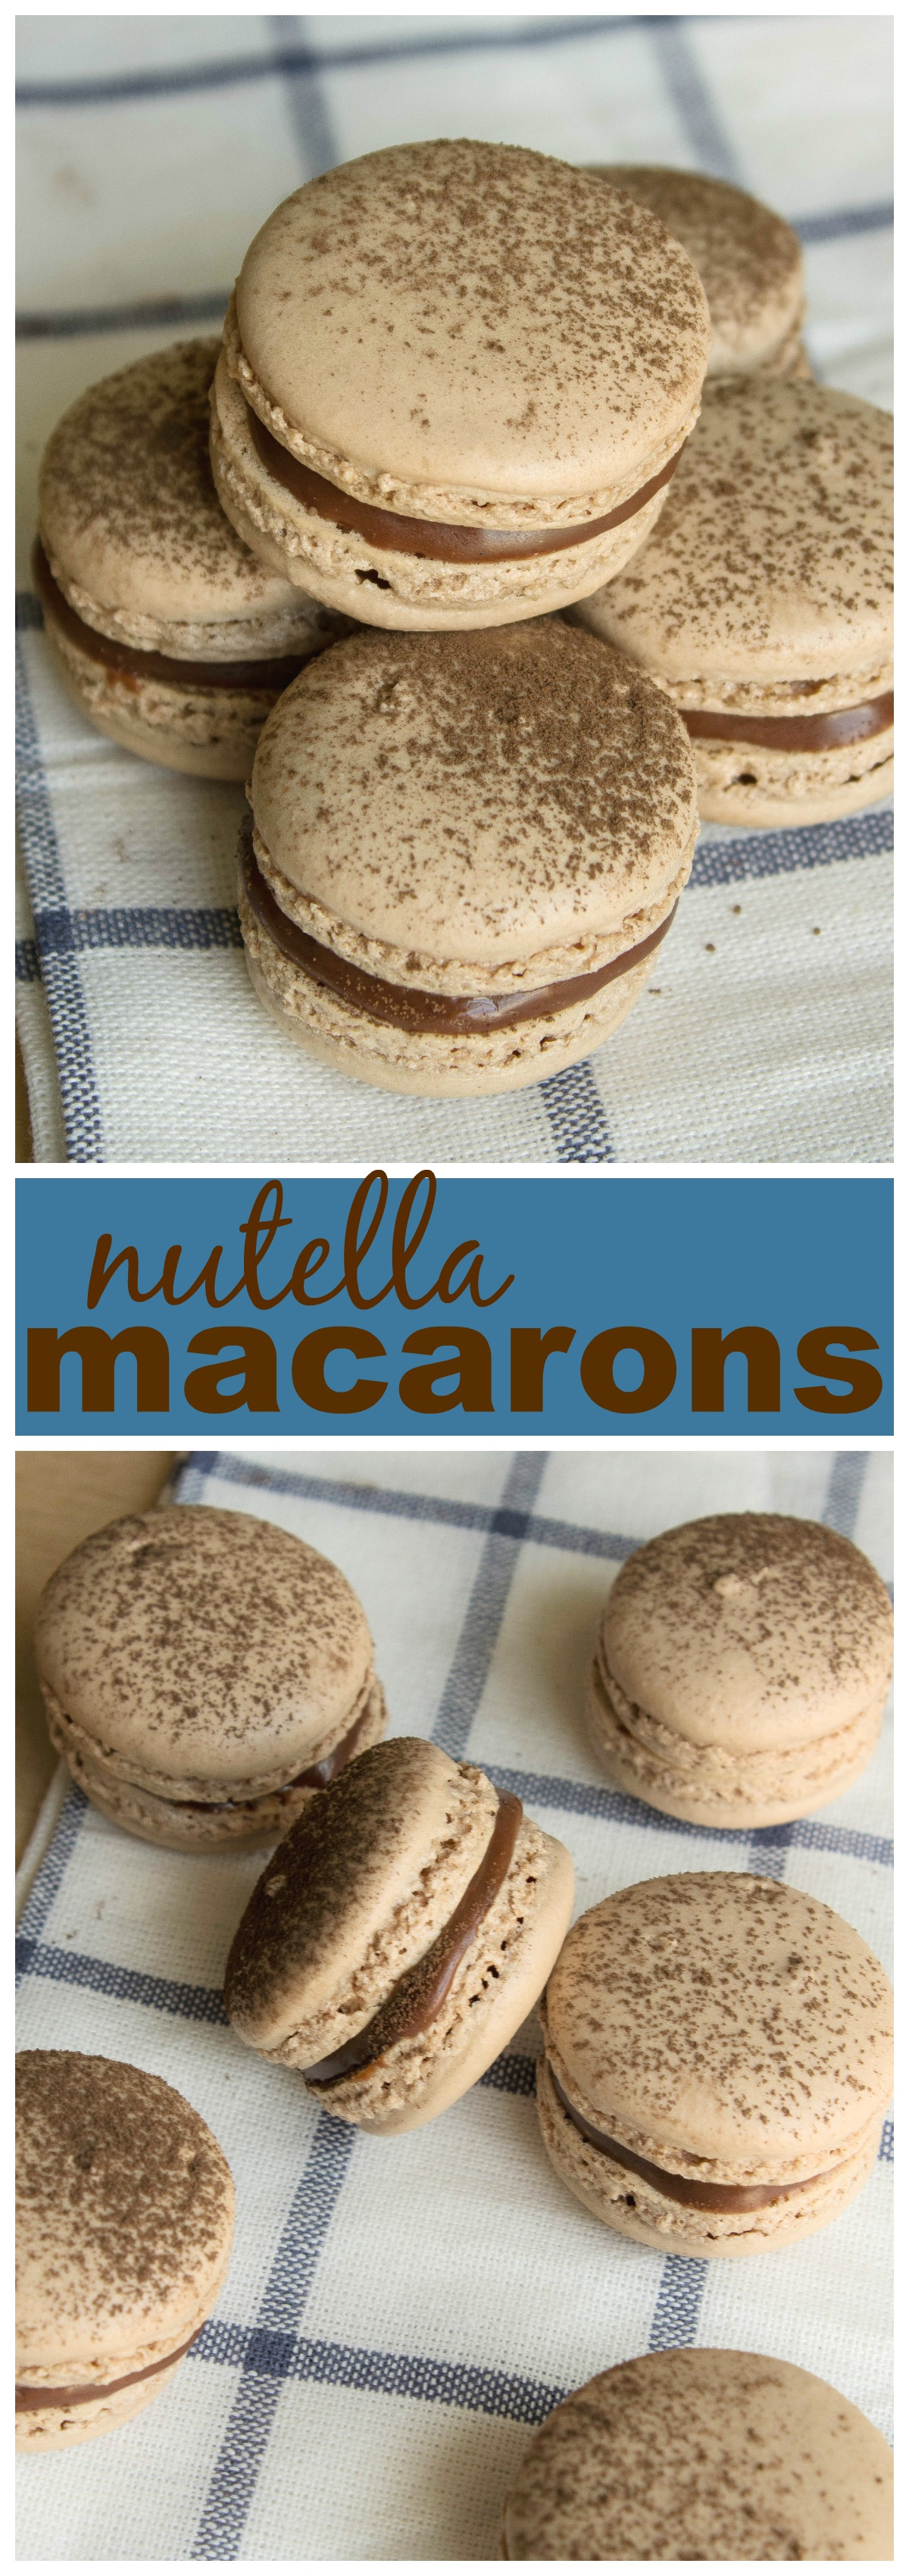 Nutella Macarons picture collage